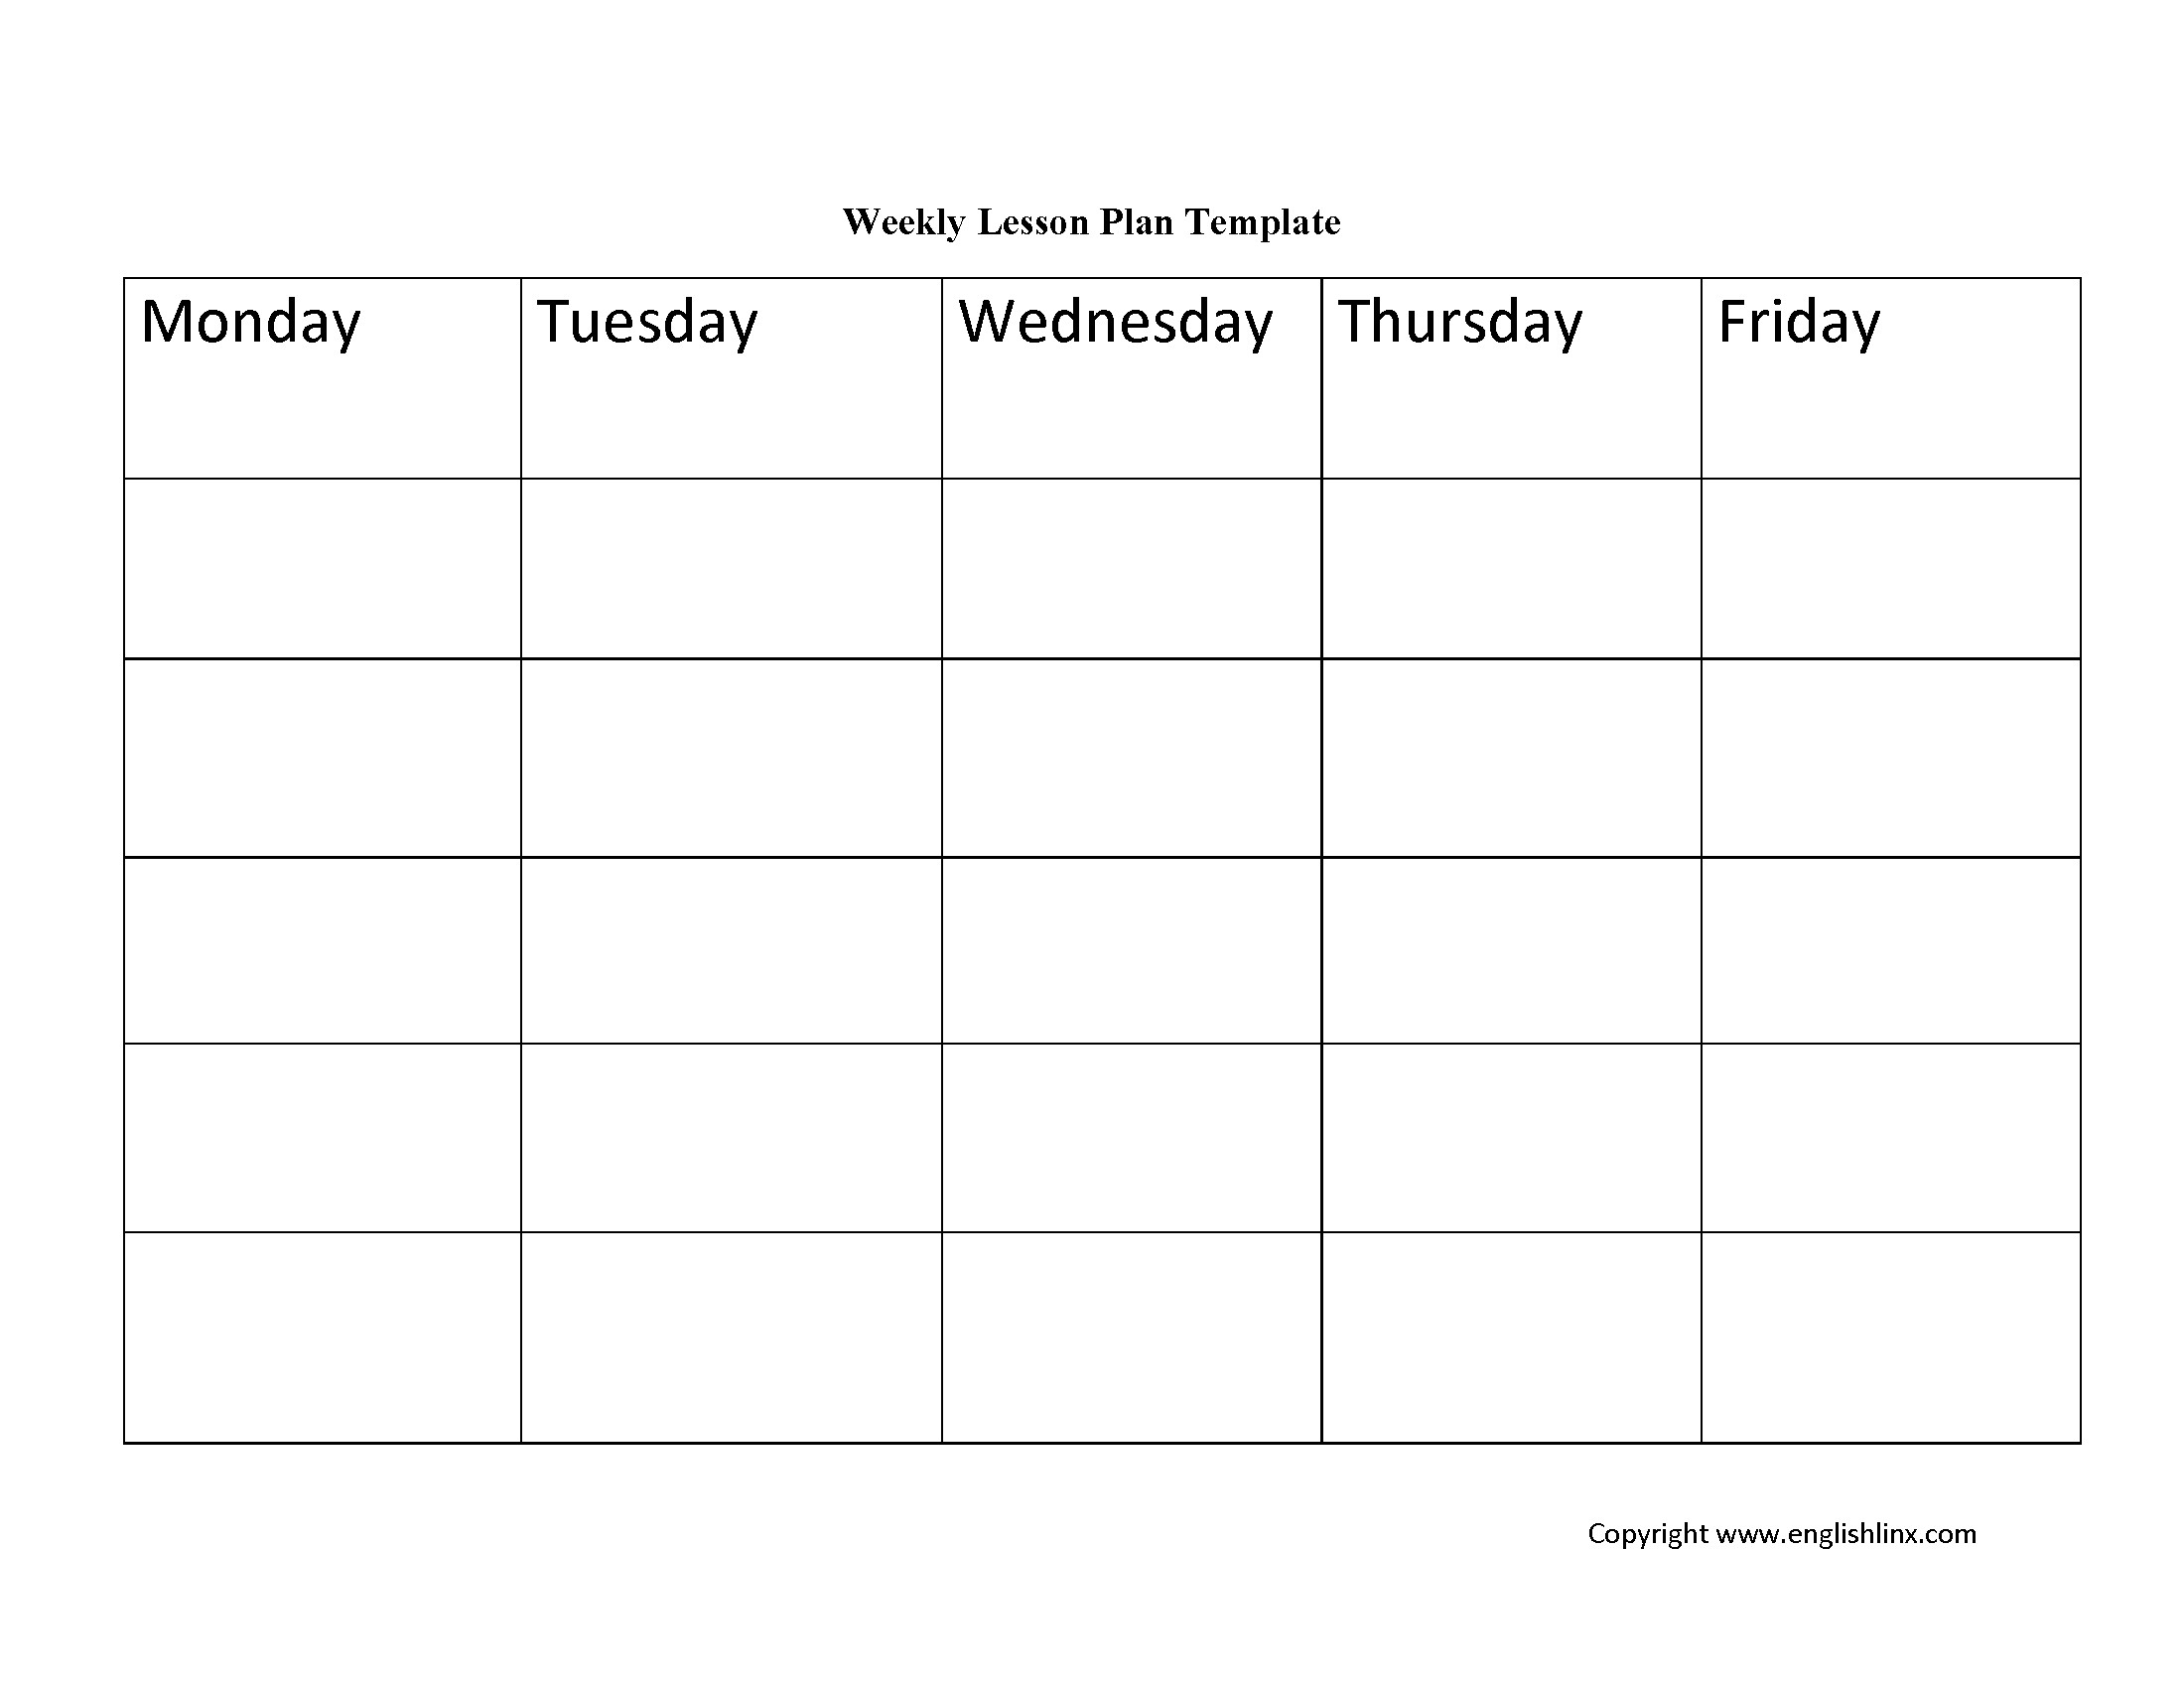 Weekly Lesson Plan Template Lesson Plan Template